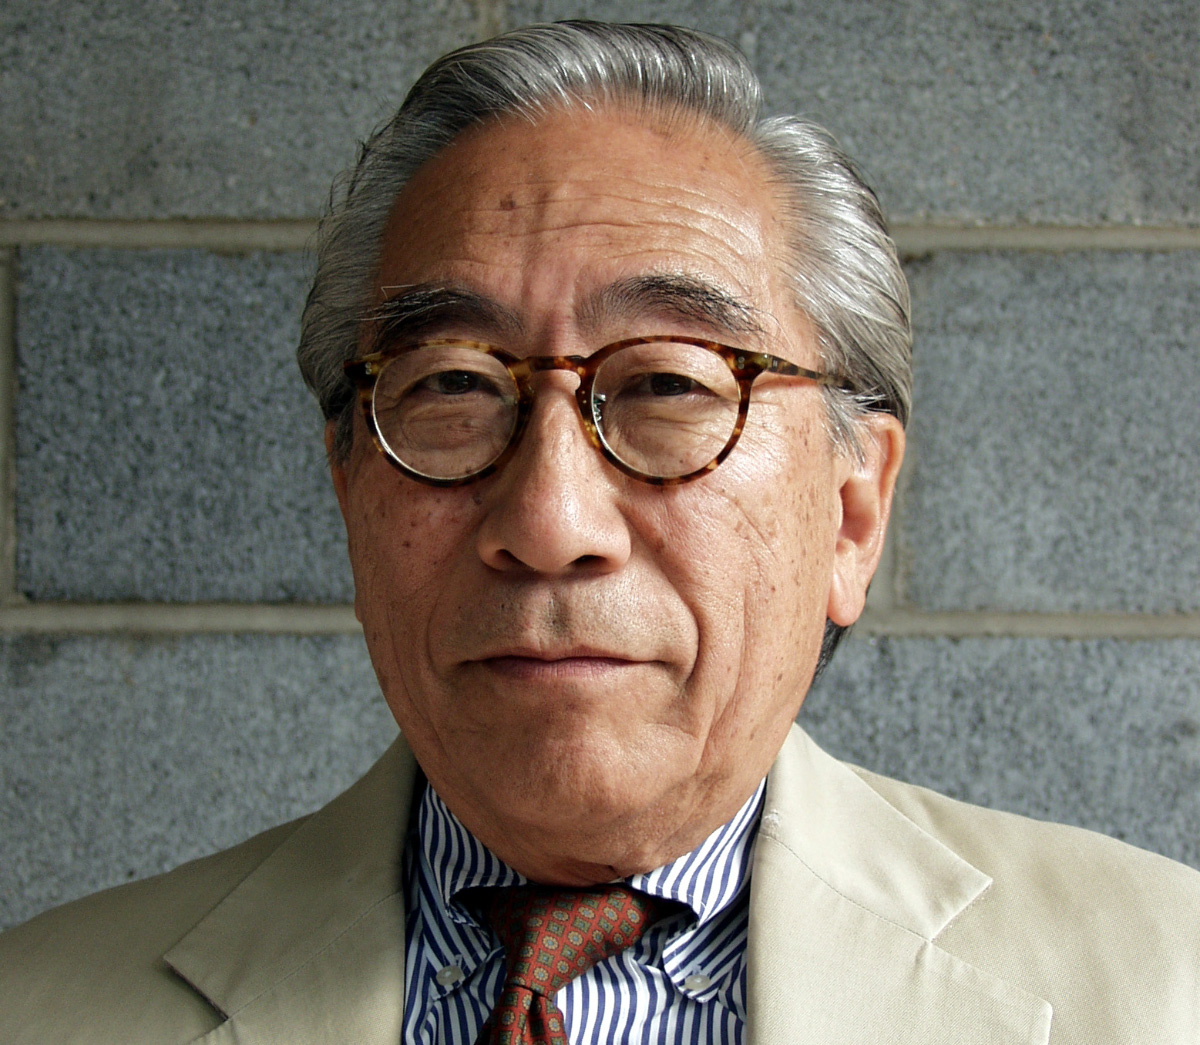 Headshot of an elderly Asian man